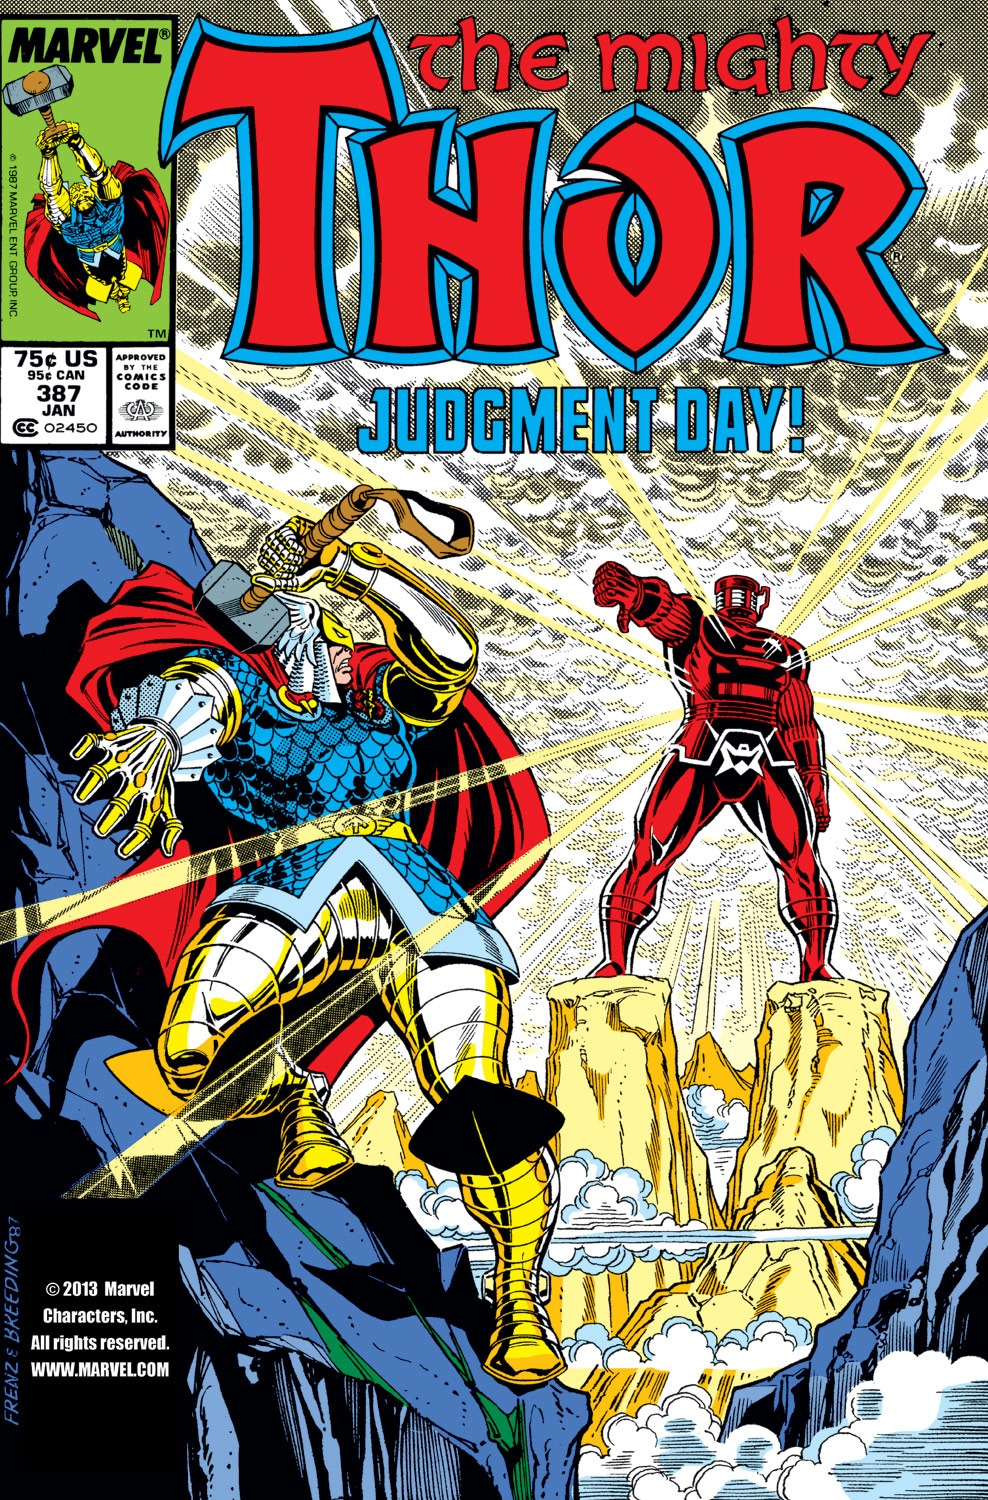 Thor (1966) 387 Page 1